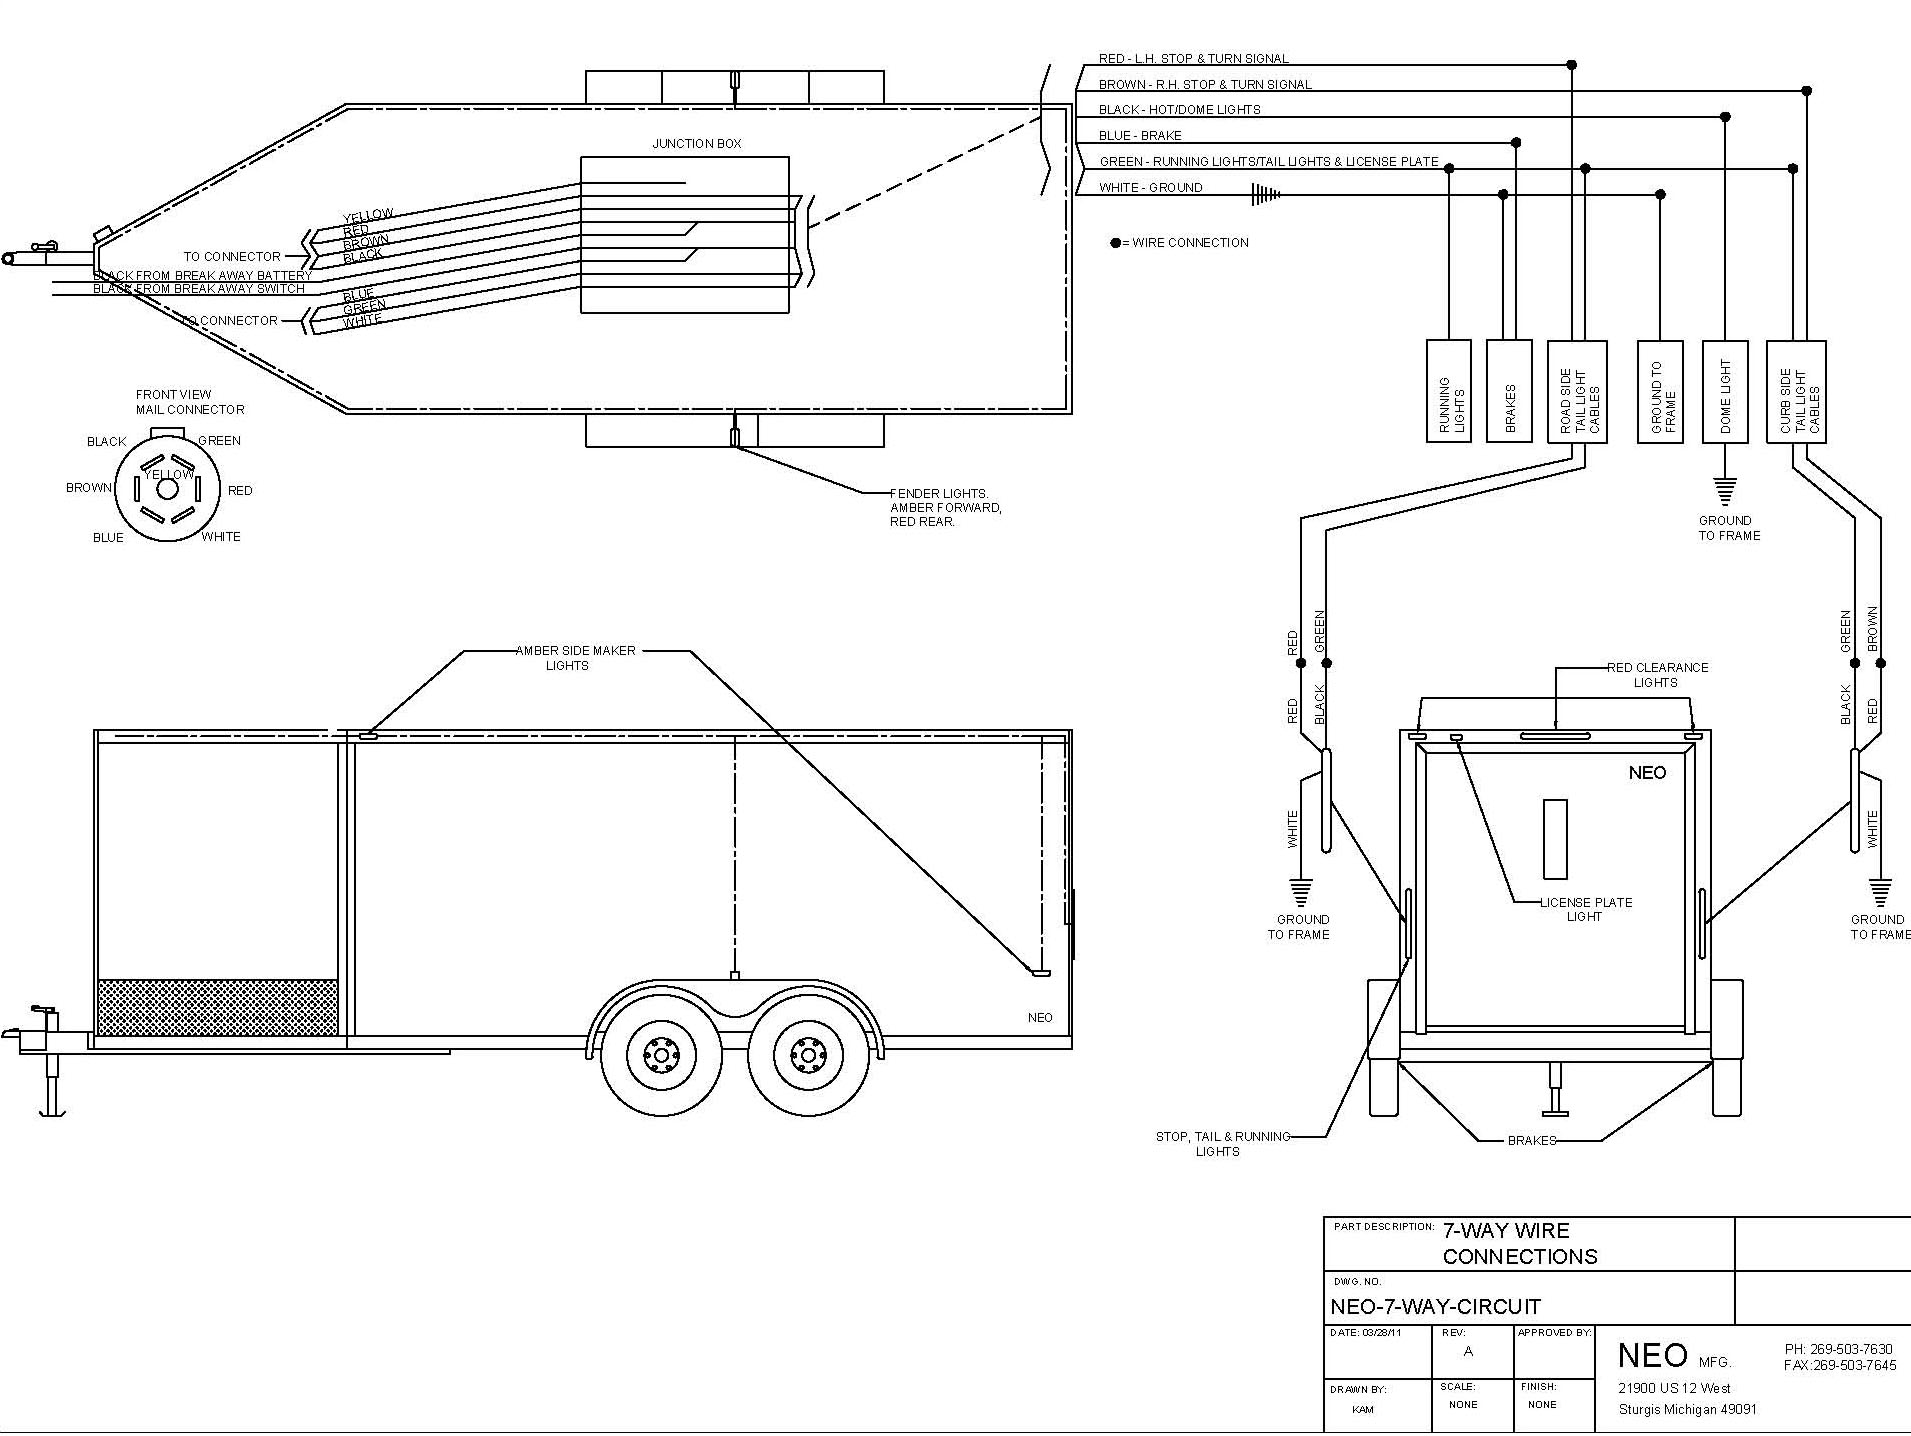 wiring diagram for semi trailer lights with Wabash Trailer Wiring Diagrams on Paccar Mx 11 Fuel Diagram likewise Sterling 2005 Engine Diagram moreover Additional Information together with Wabash Trailer Wiring Diagrams furthermore 5th Wheel C er Wiring Diagram.